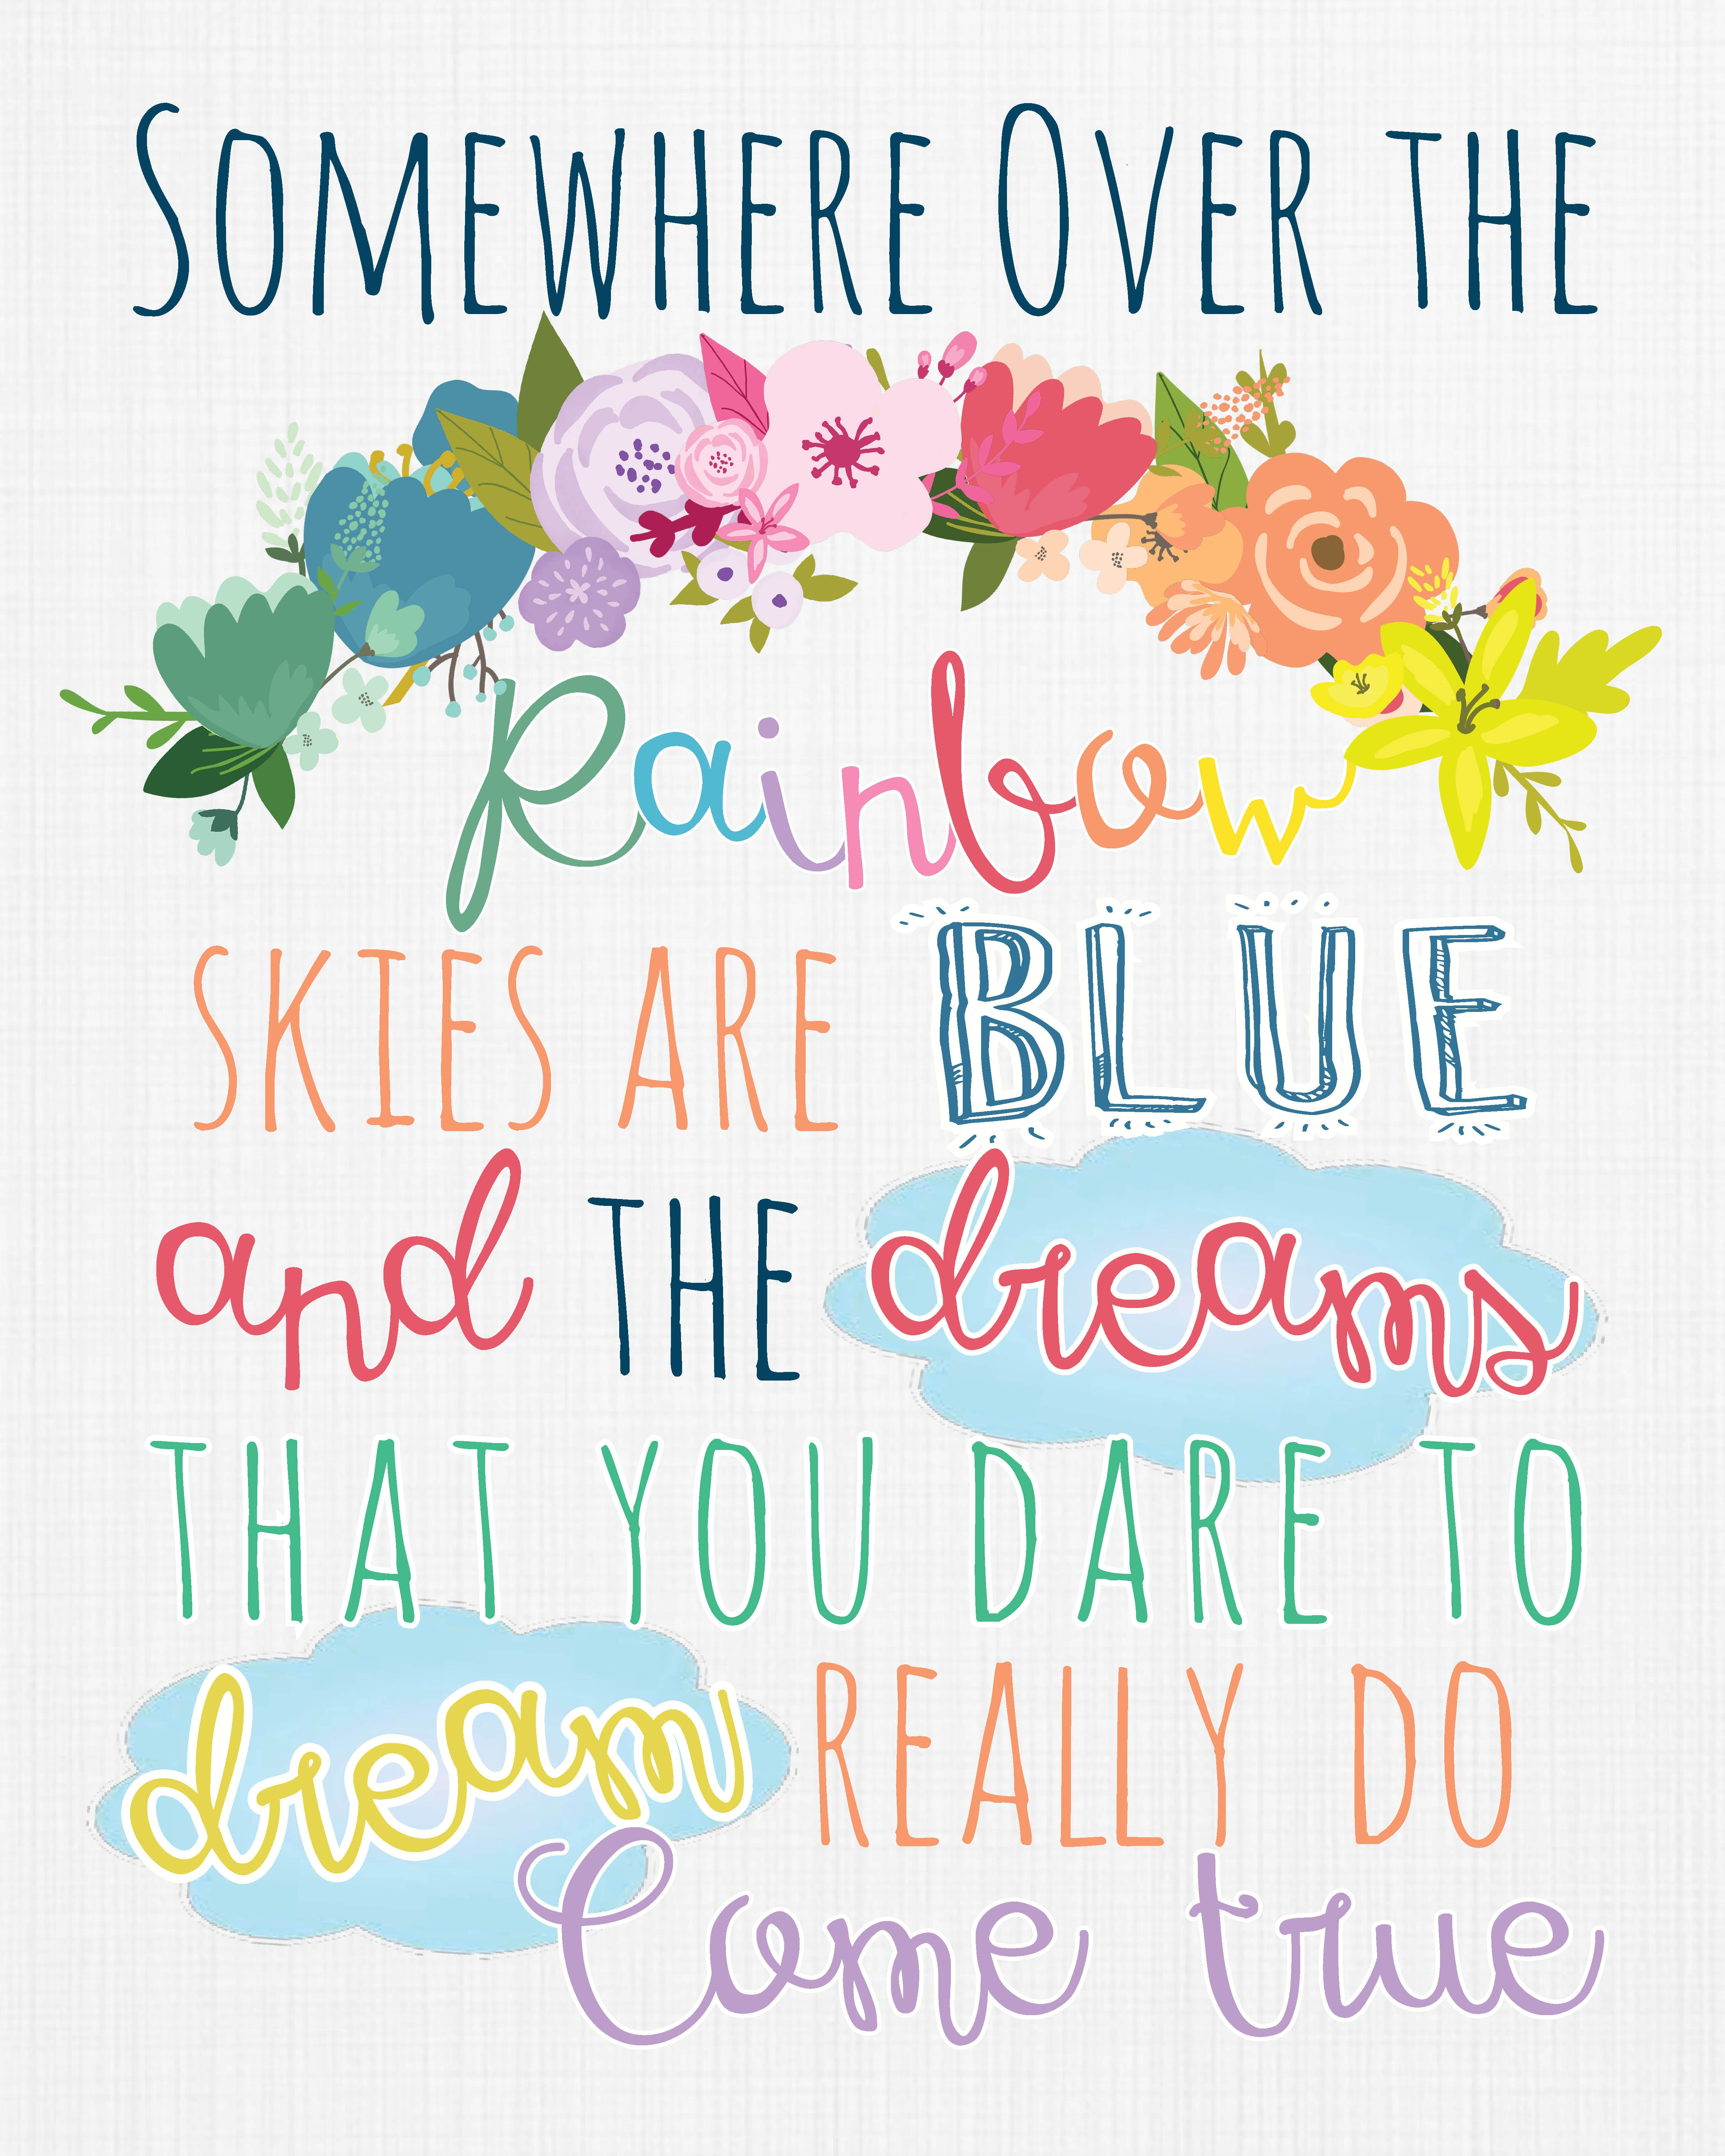 Color printing quotes - Somewhere Over The Rainbow Print By Dubdubdesigns Dubdubdesigns Etsy Com